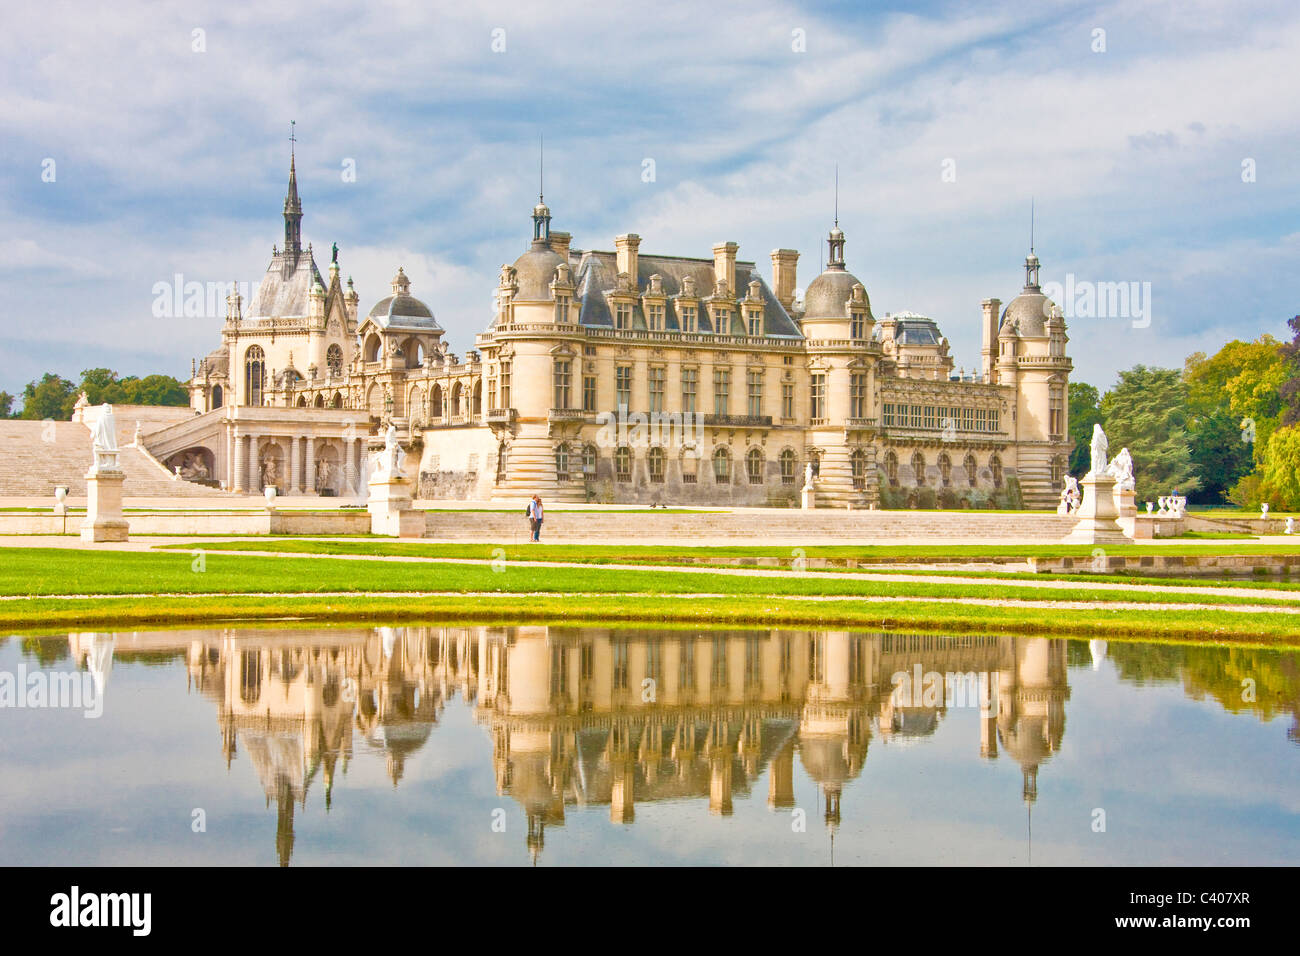 France, Europe, Villandry, Picardy, castle, world cultural heritage, water, reflection, park, Stock Photo